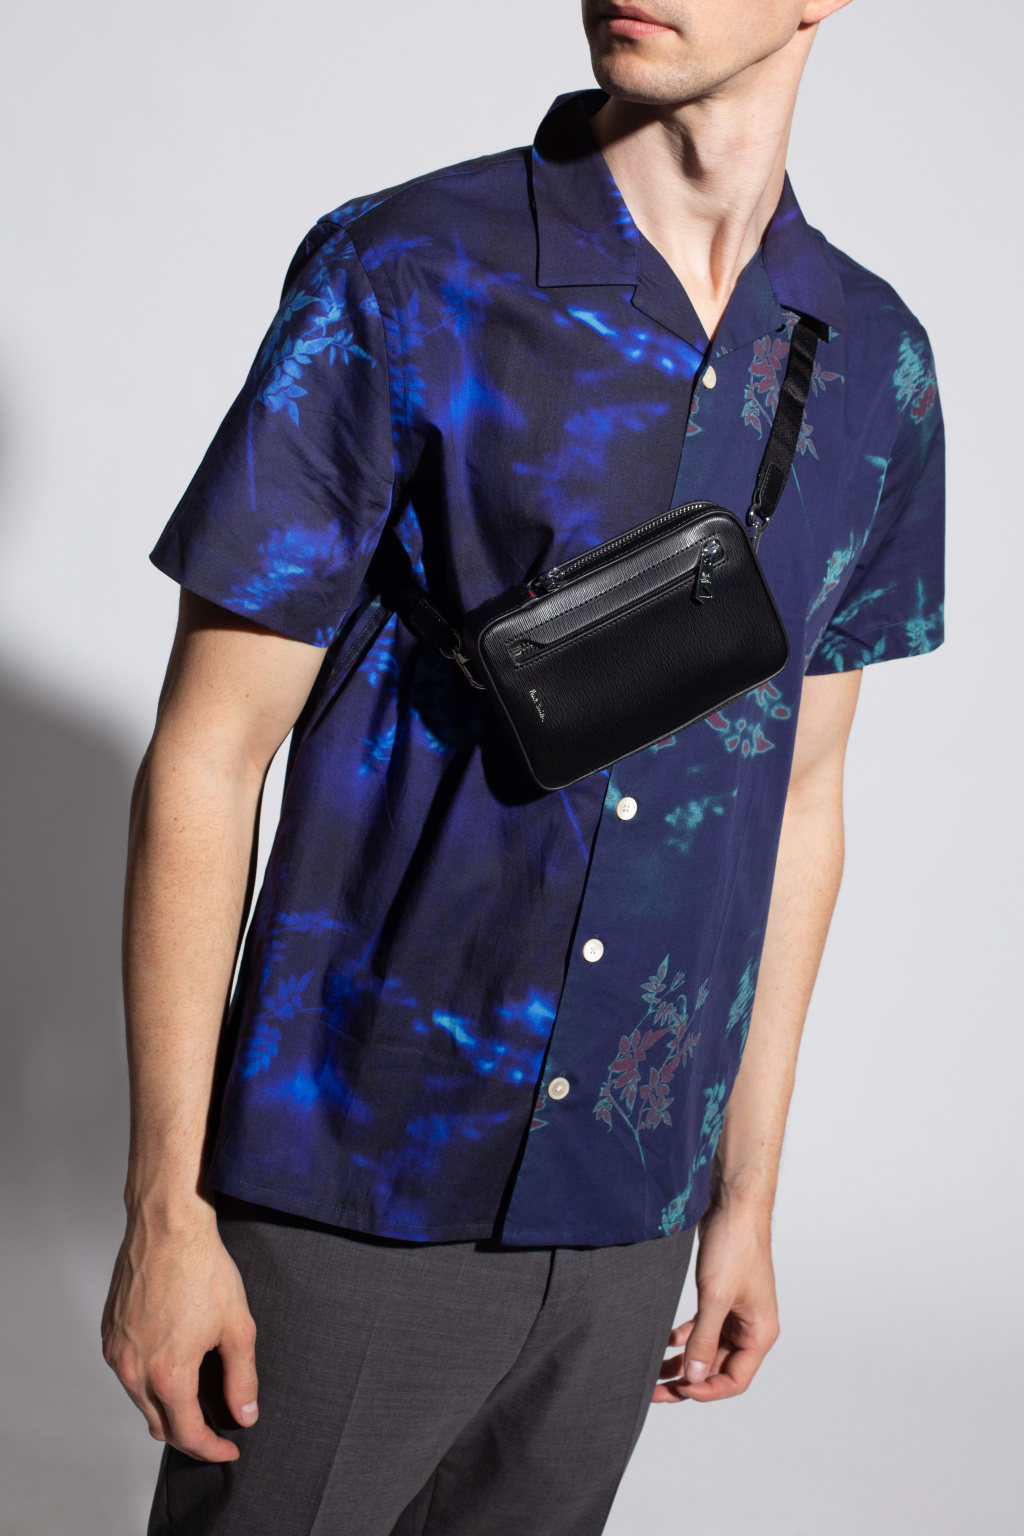 Paul Smith Leather neck pouch